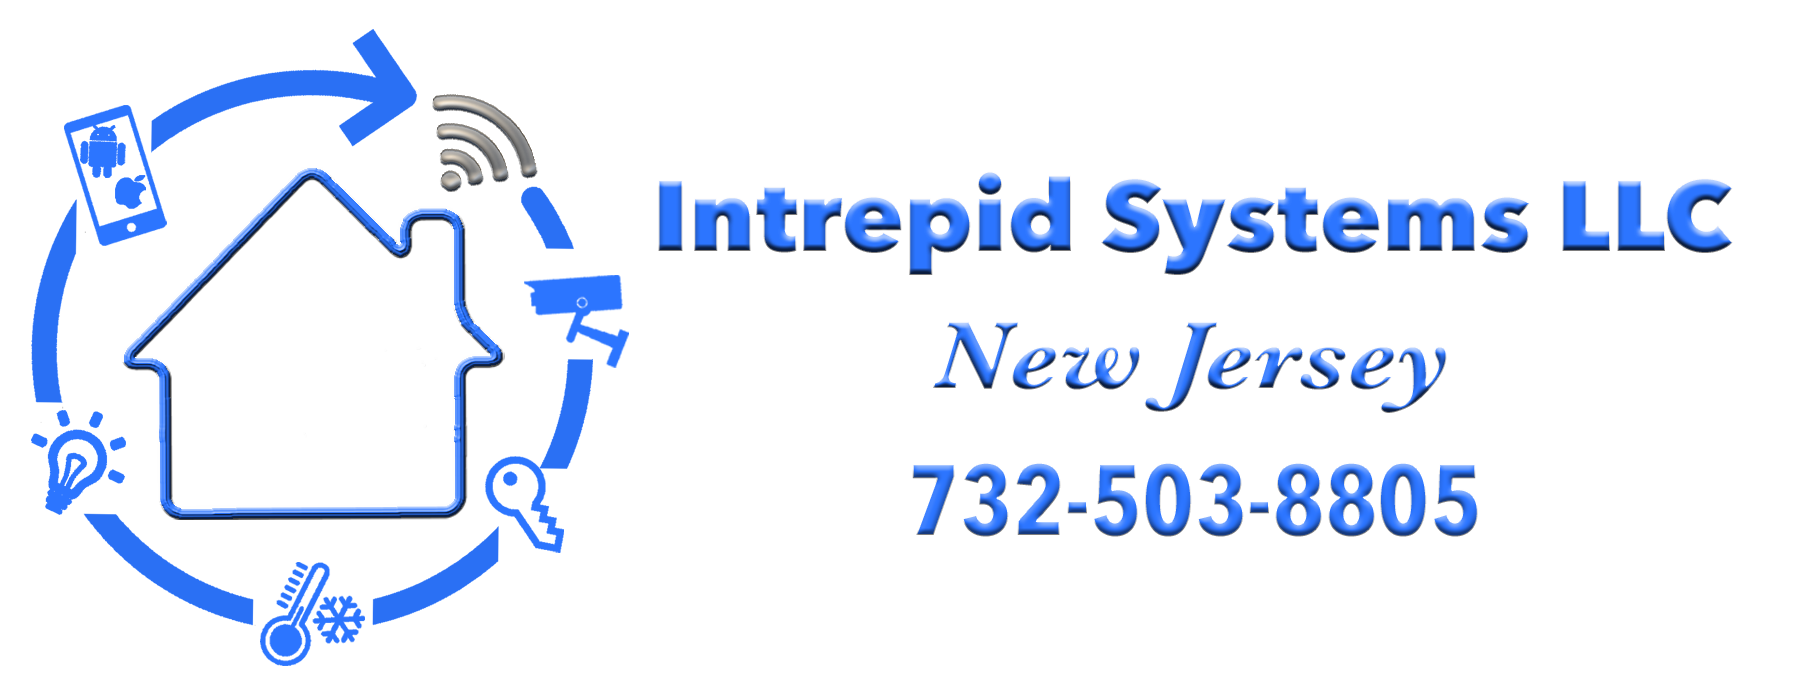 Intrepid Systems LLC